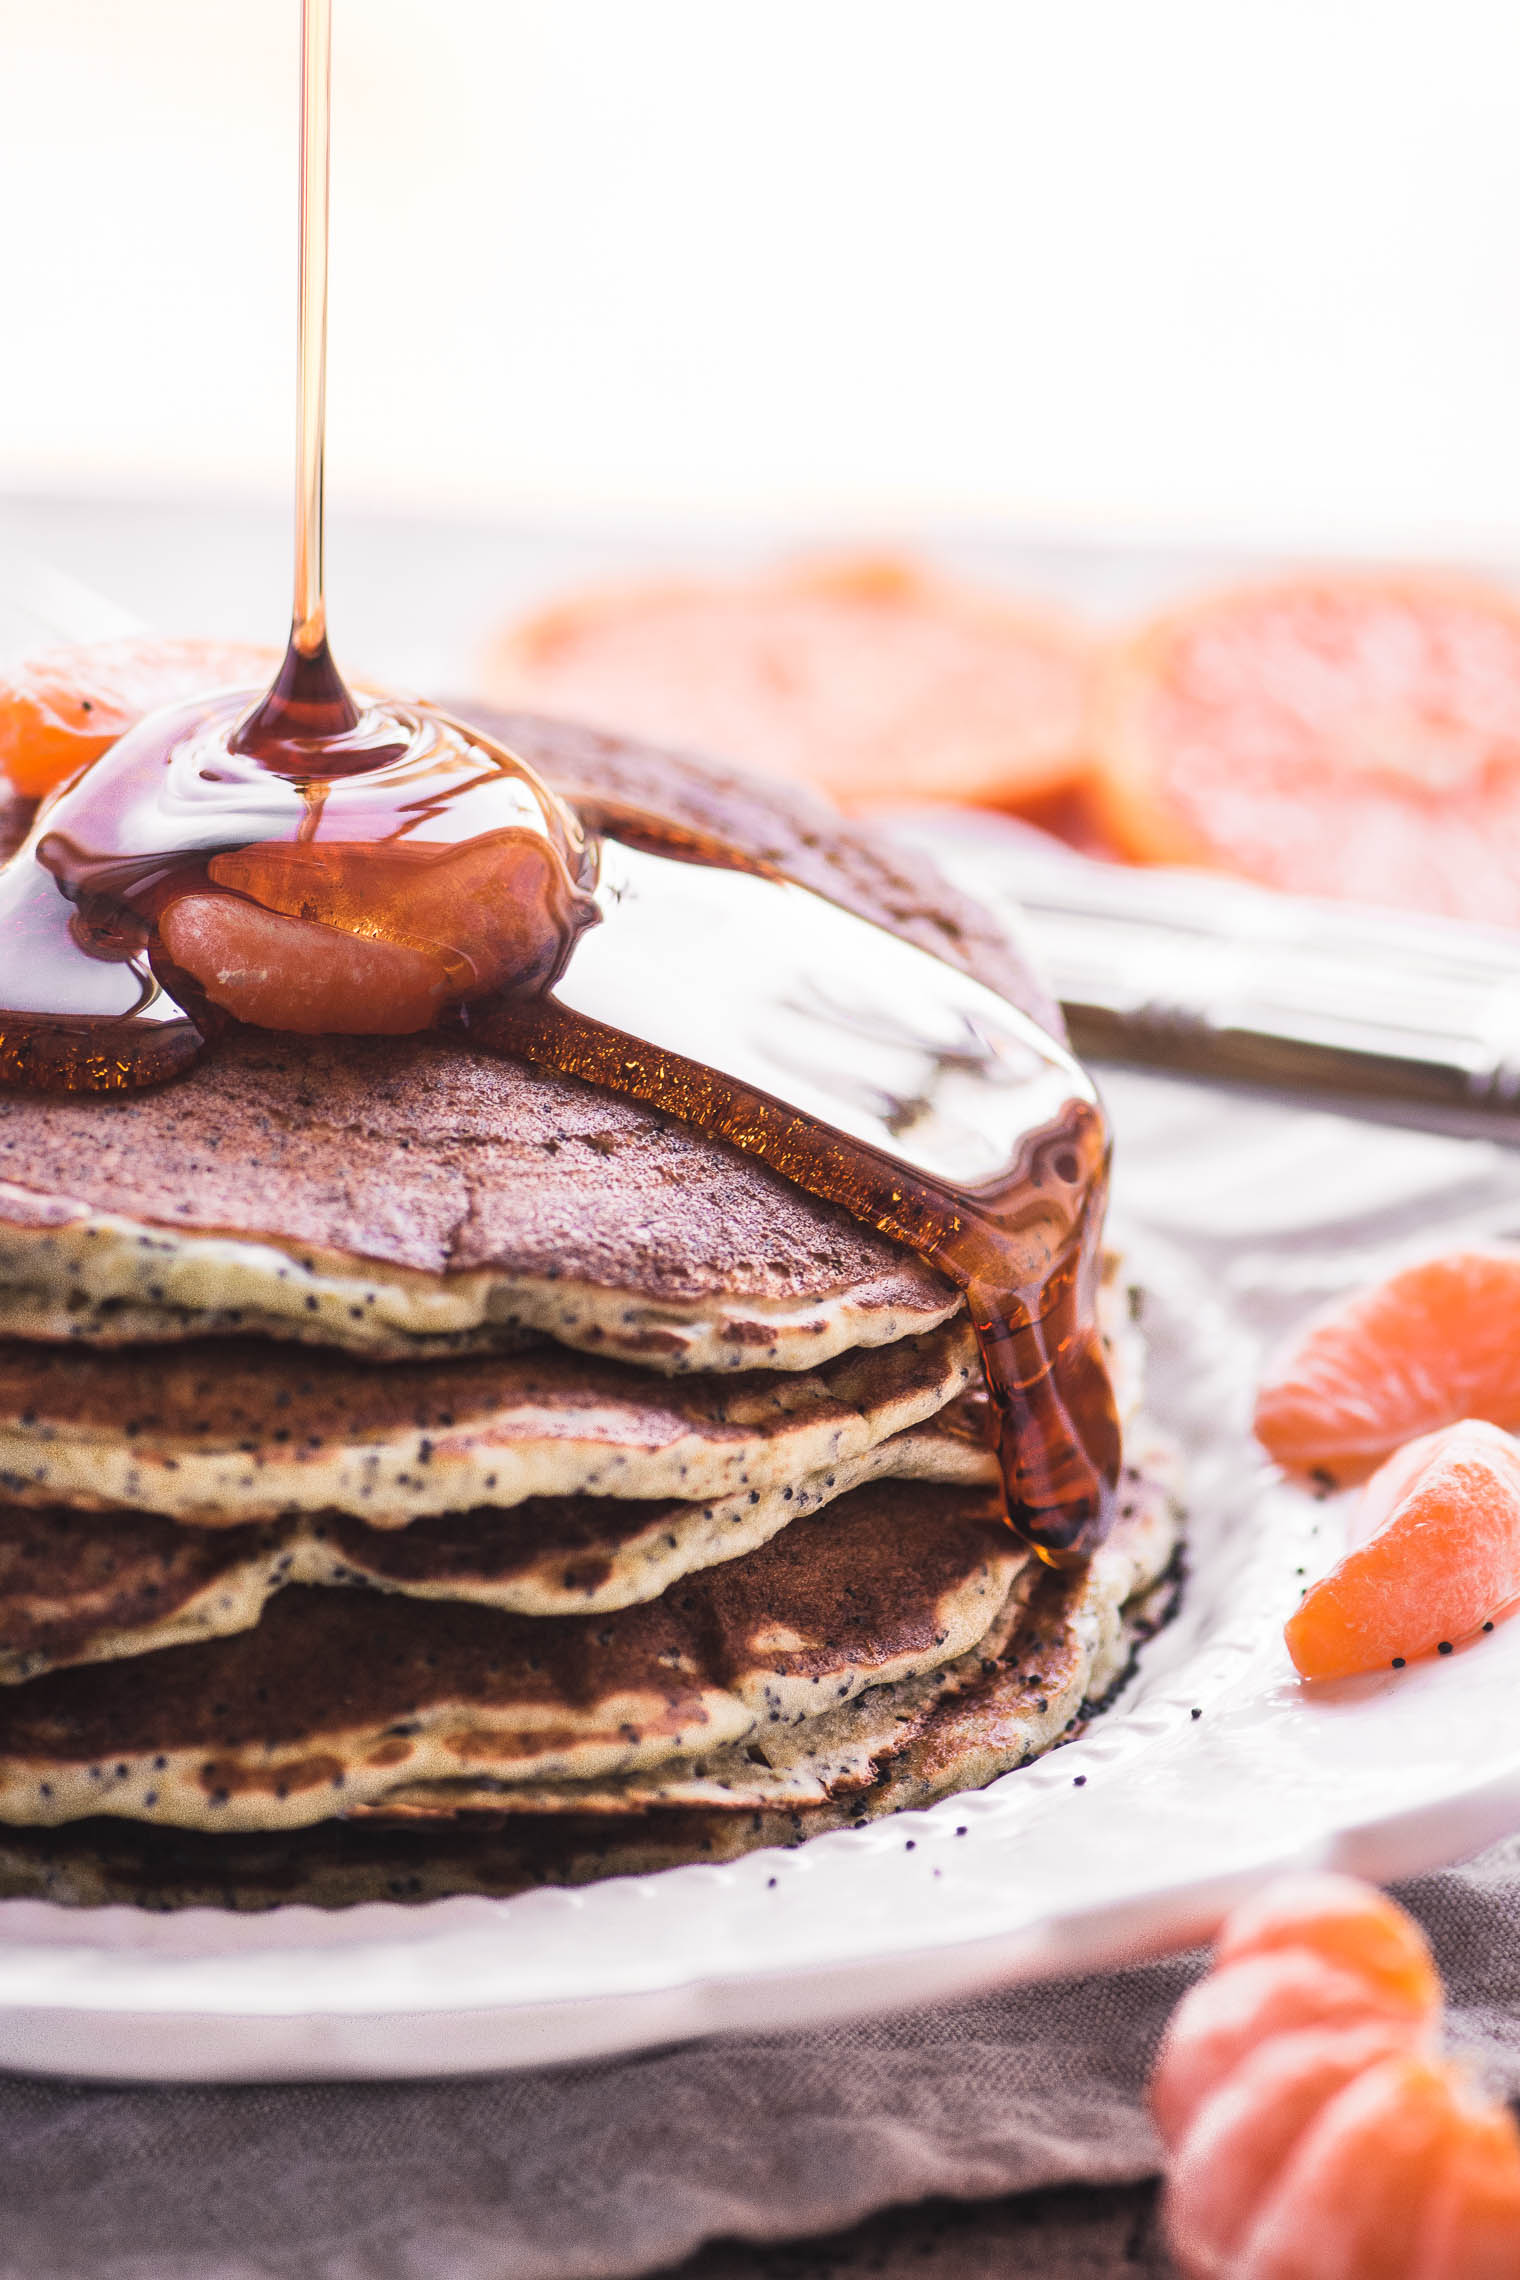 Pouring syrup on Tangerine Poppy Seed Pancakes